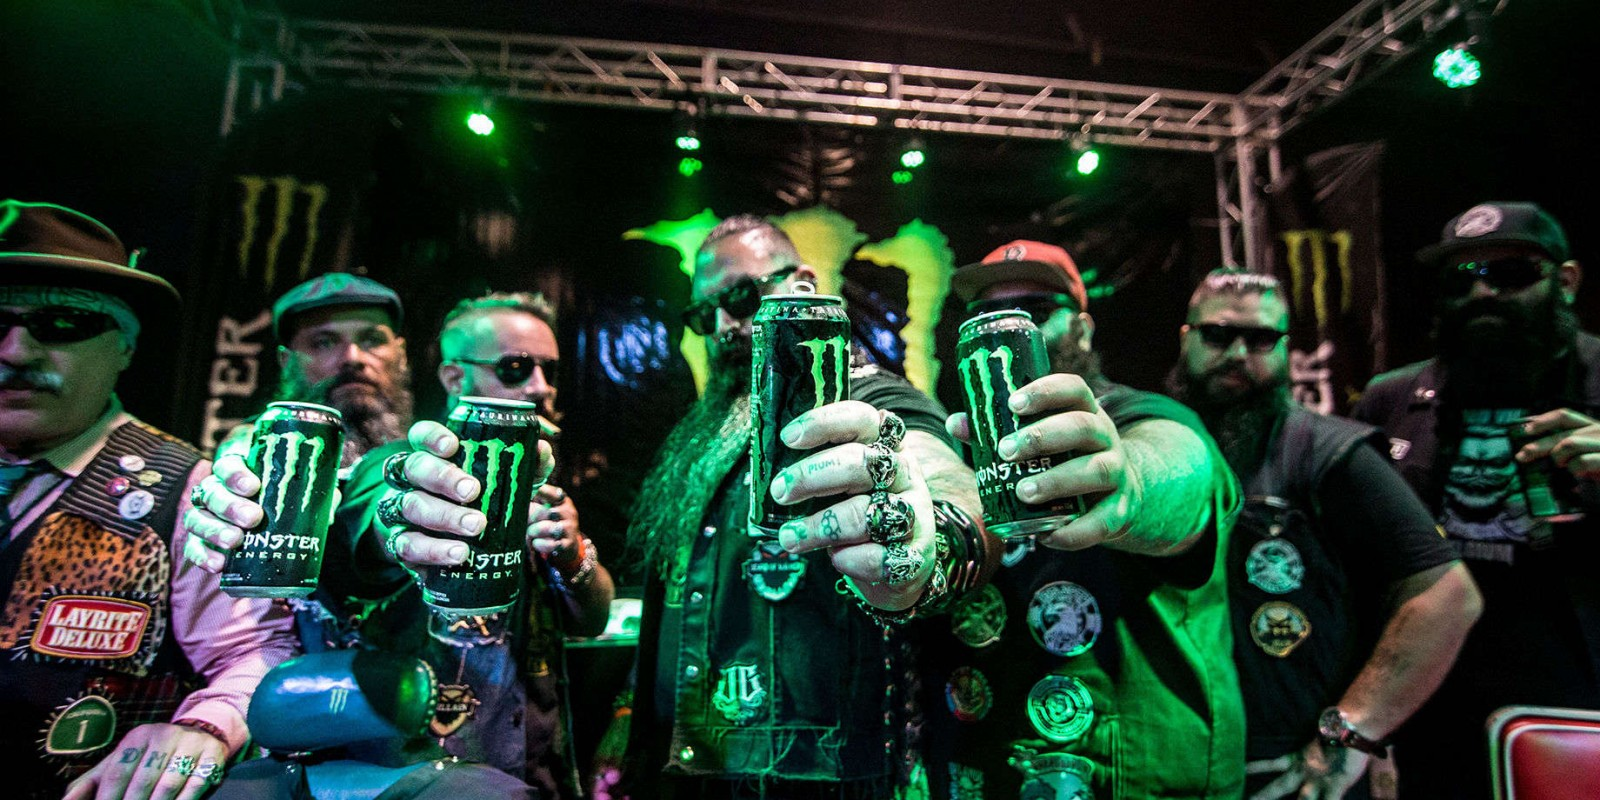 Photos from Monster The King of Barbers event in Argentina